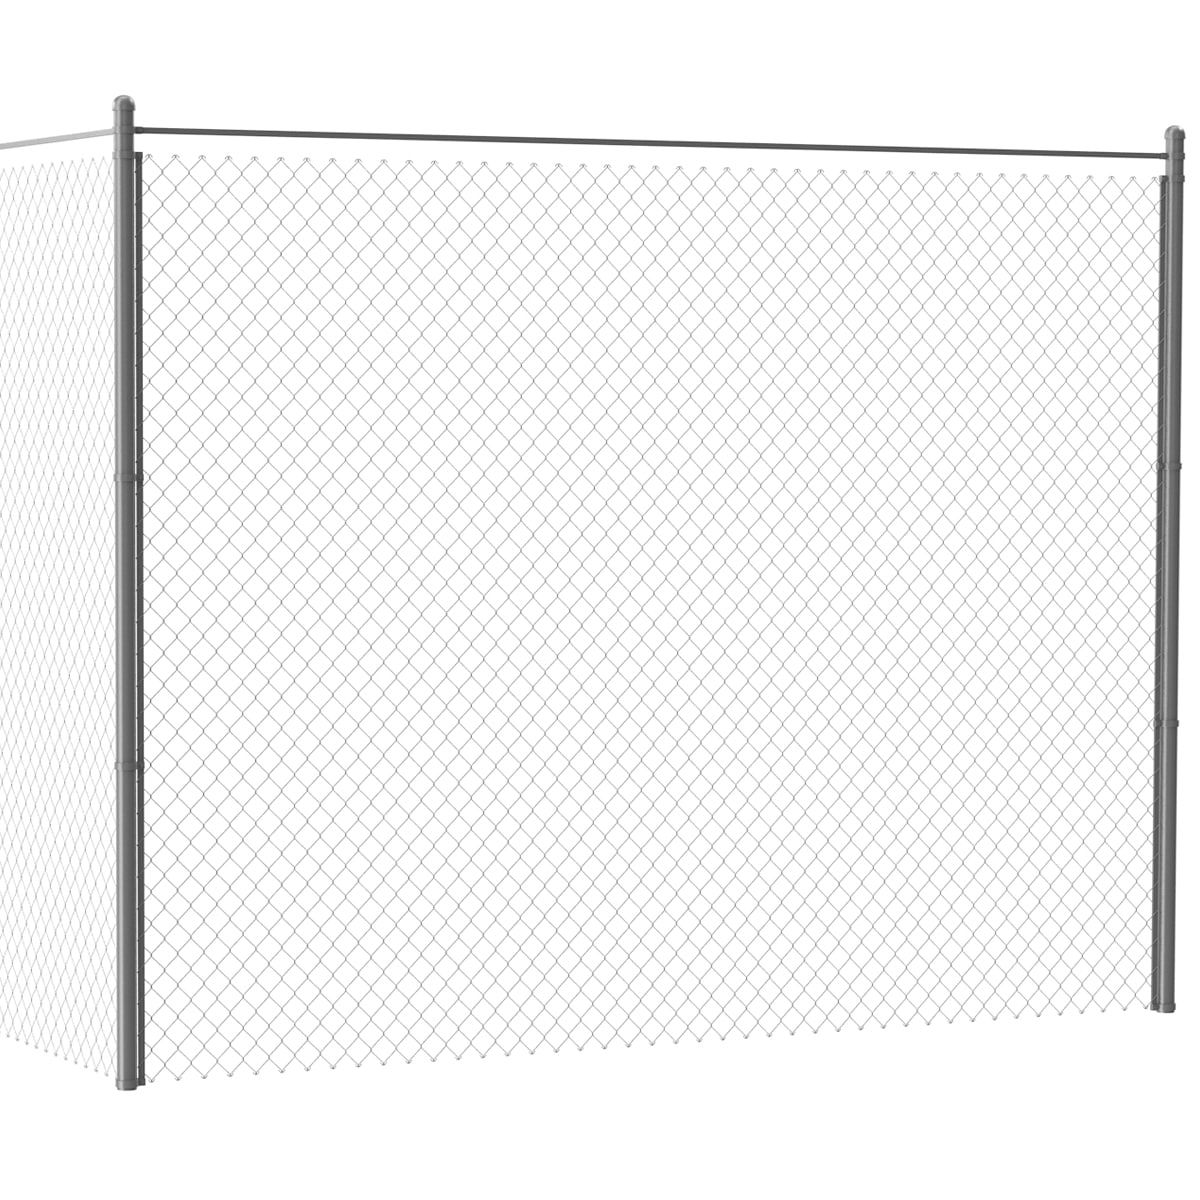 Chain Link Fence 3D Model - 3D Model | 3D-Modeling | Pinterest ...